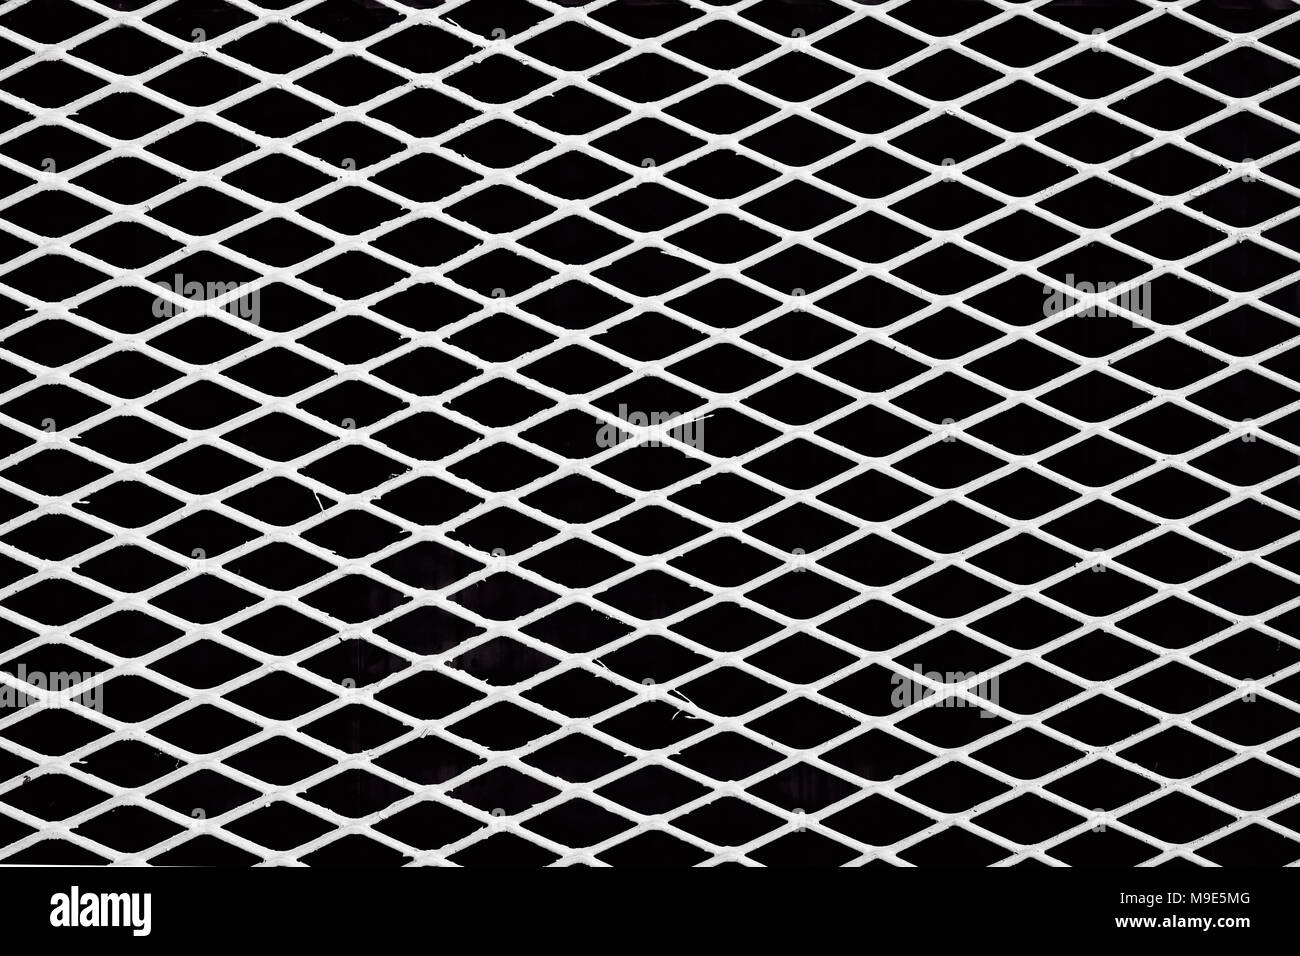 Diagonal white metal wire grid or mesh, black background. Black and white image - Stock Image